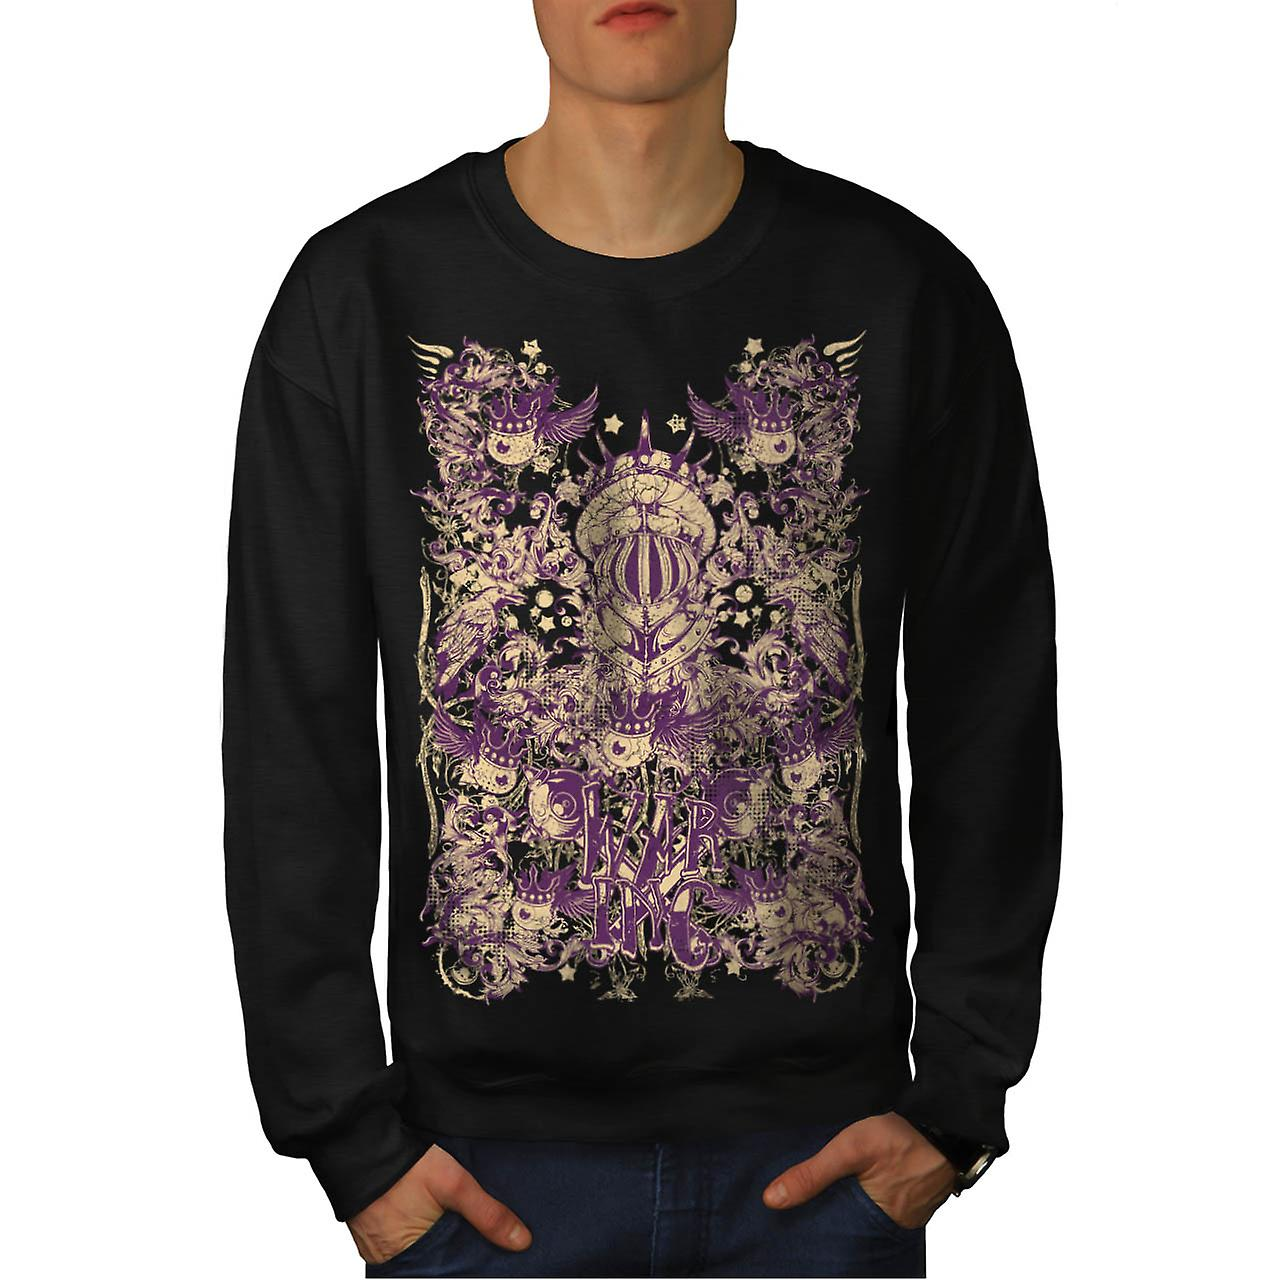 War Inc duivel koning Monster strijd mannen zwart Sweatshirt | Wellcoda